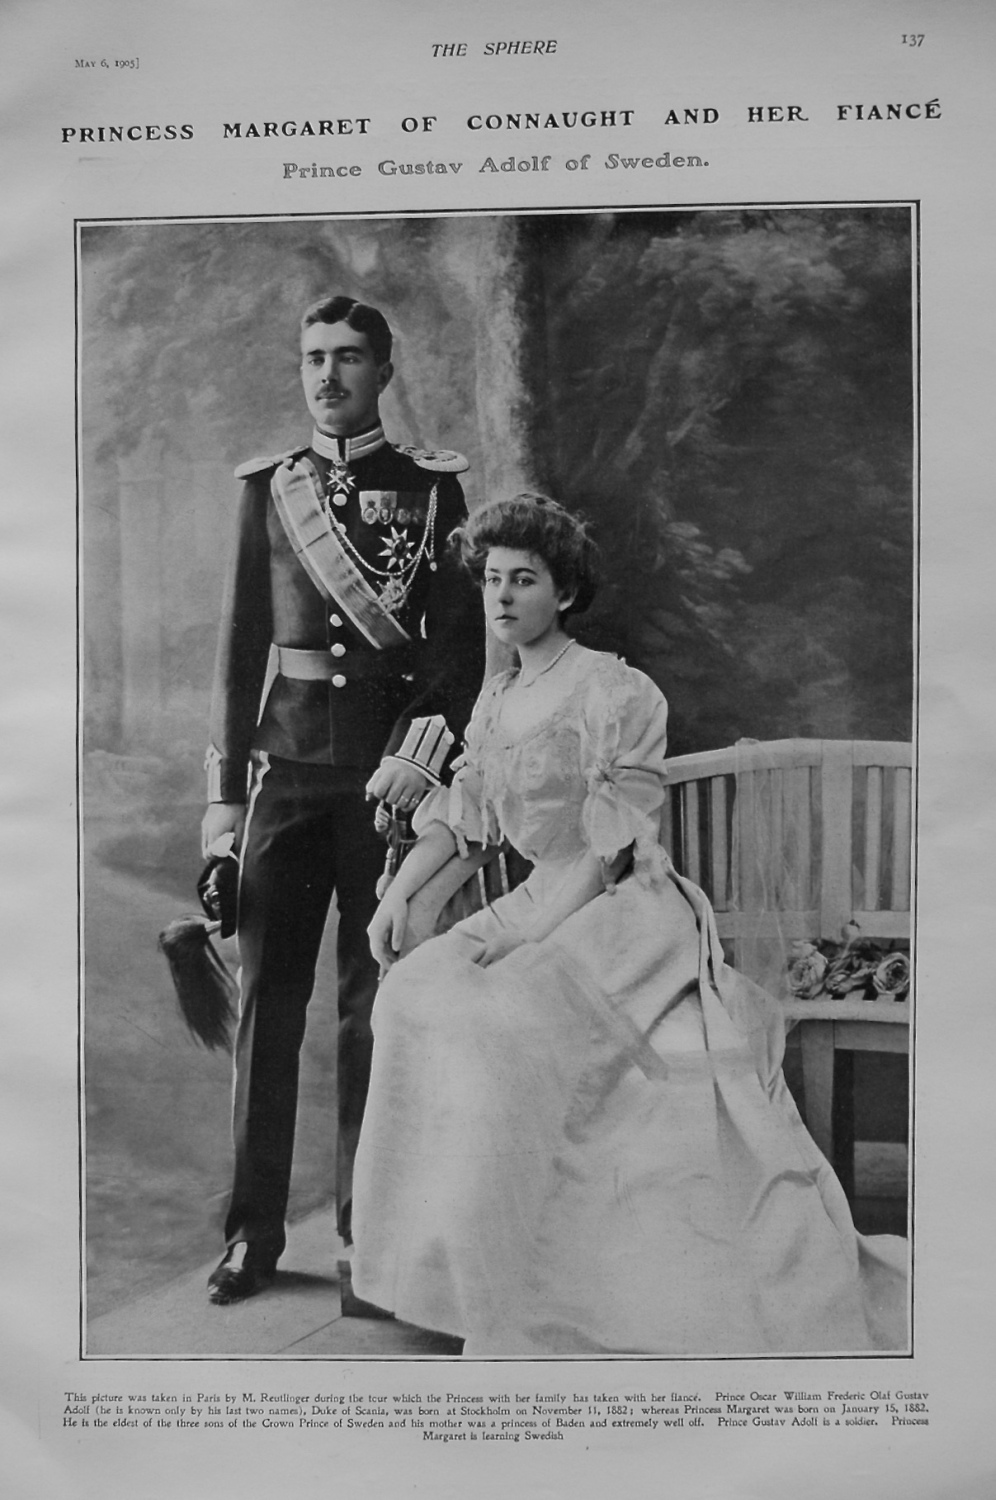 Princess Margaret of Connaught and Her Fiance Prince Gustav Adolf of Sweden